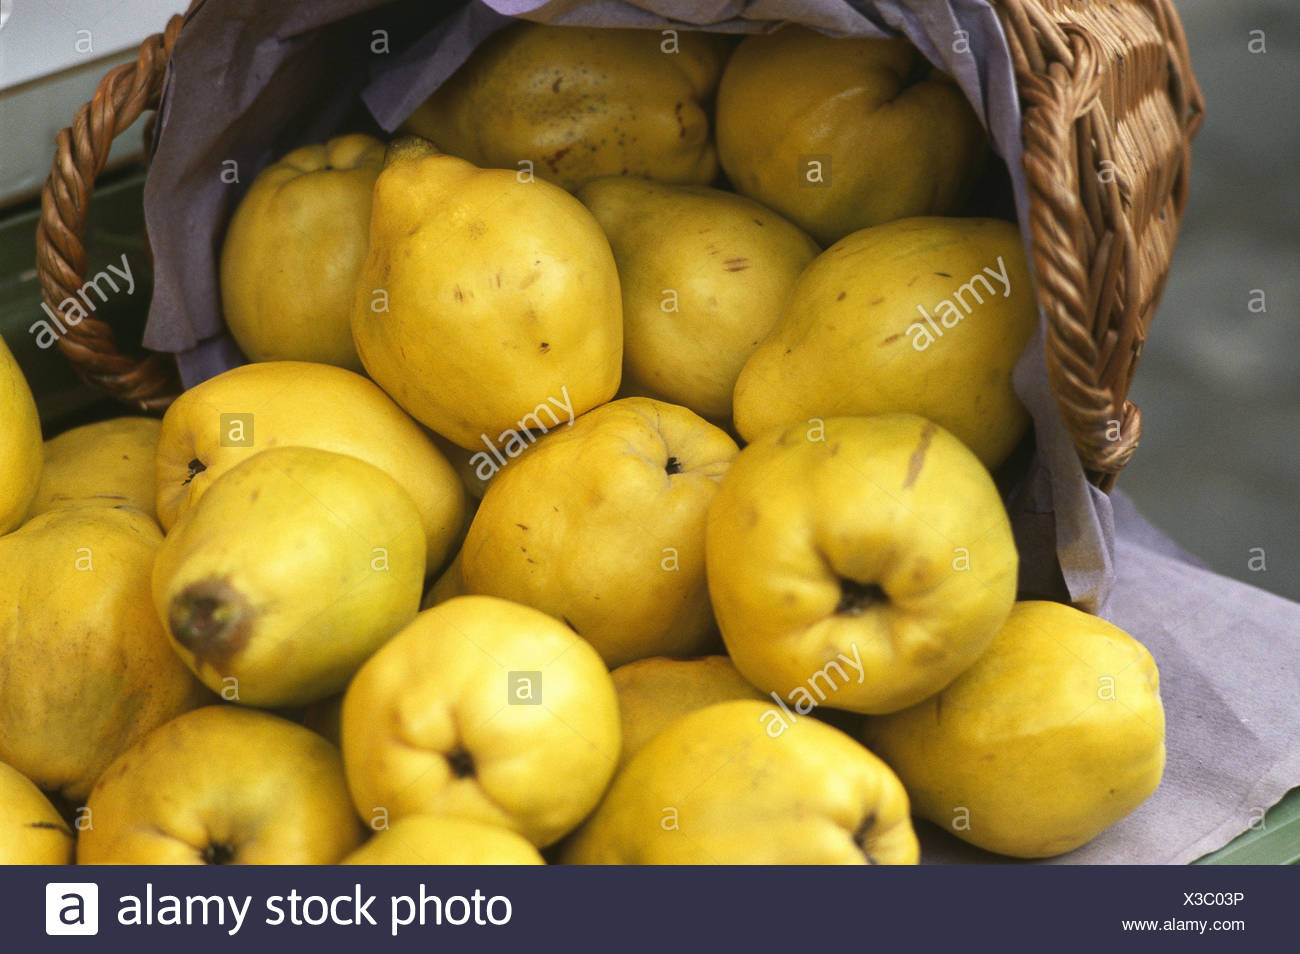 Basket, quinces, Cydonia oblonga, fruit, fruits, autumn fruits, pomes, pear quinces, nutrition healthy, rich in vitamins, freshly, harvest-freshly, harvest, quince harvest, Still life, product photography, Stock Photo